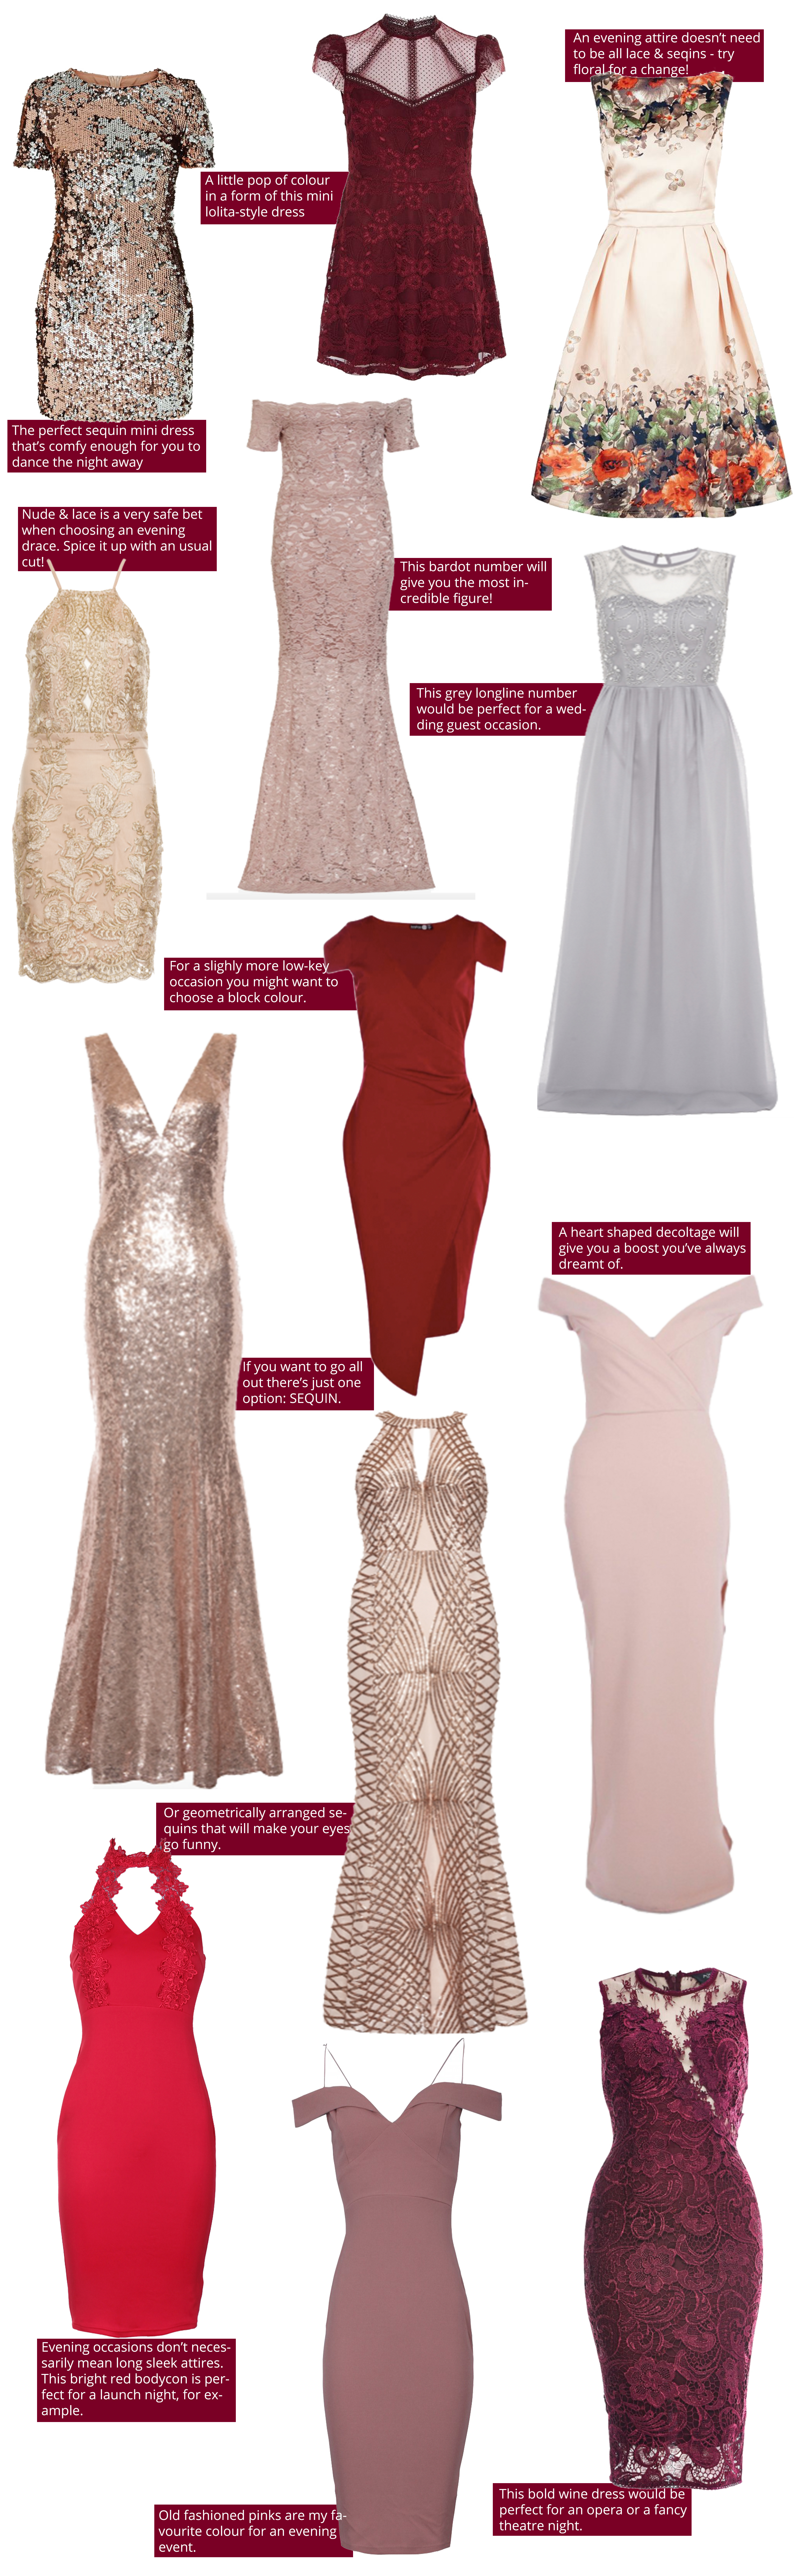 13 evening dresses for this party season